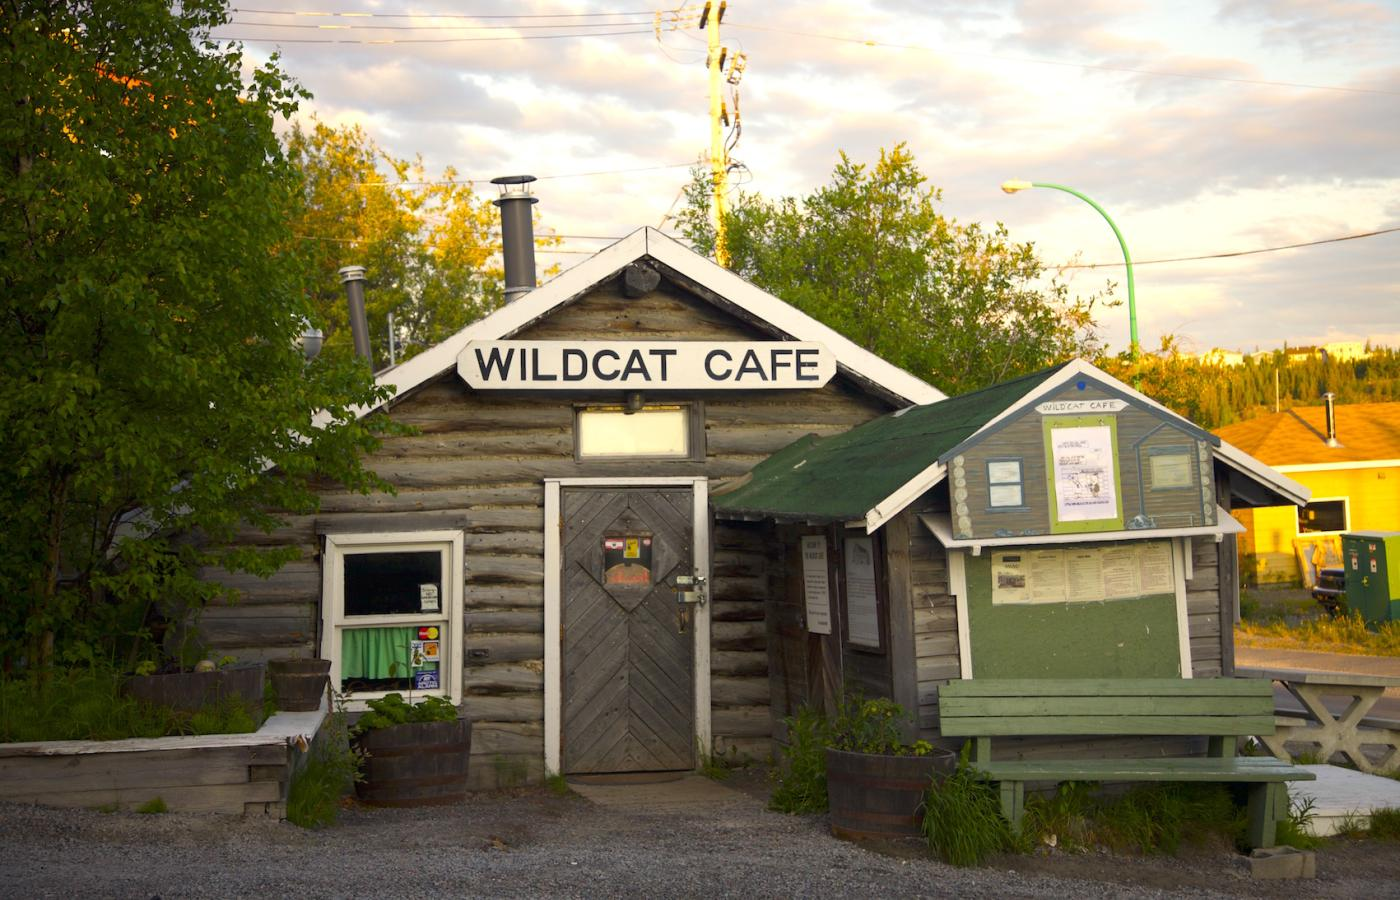 The Wildcat Cafe in Yellowknife, Northwest Territories